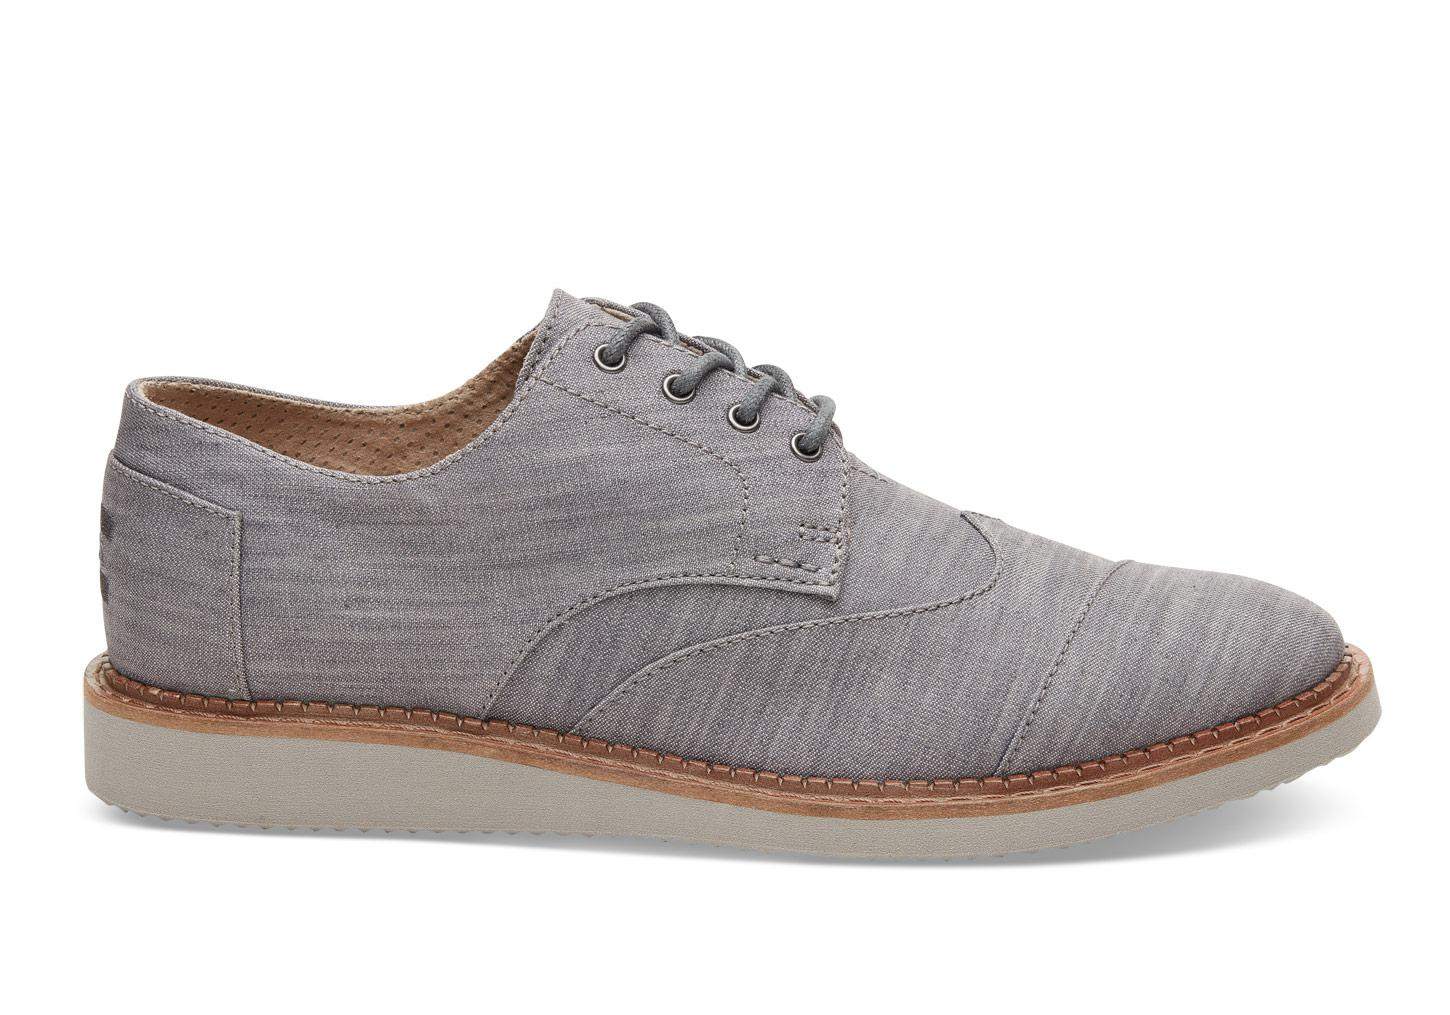 Mens Gray Oxford Shoes